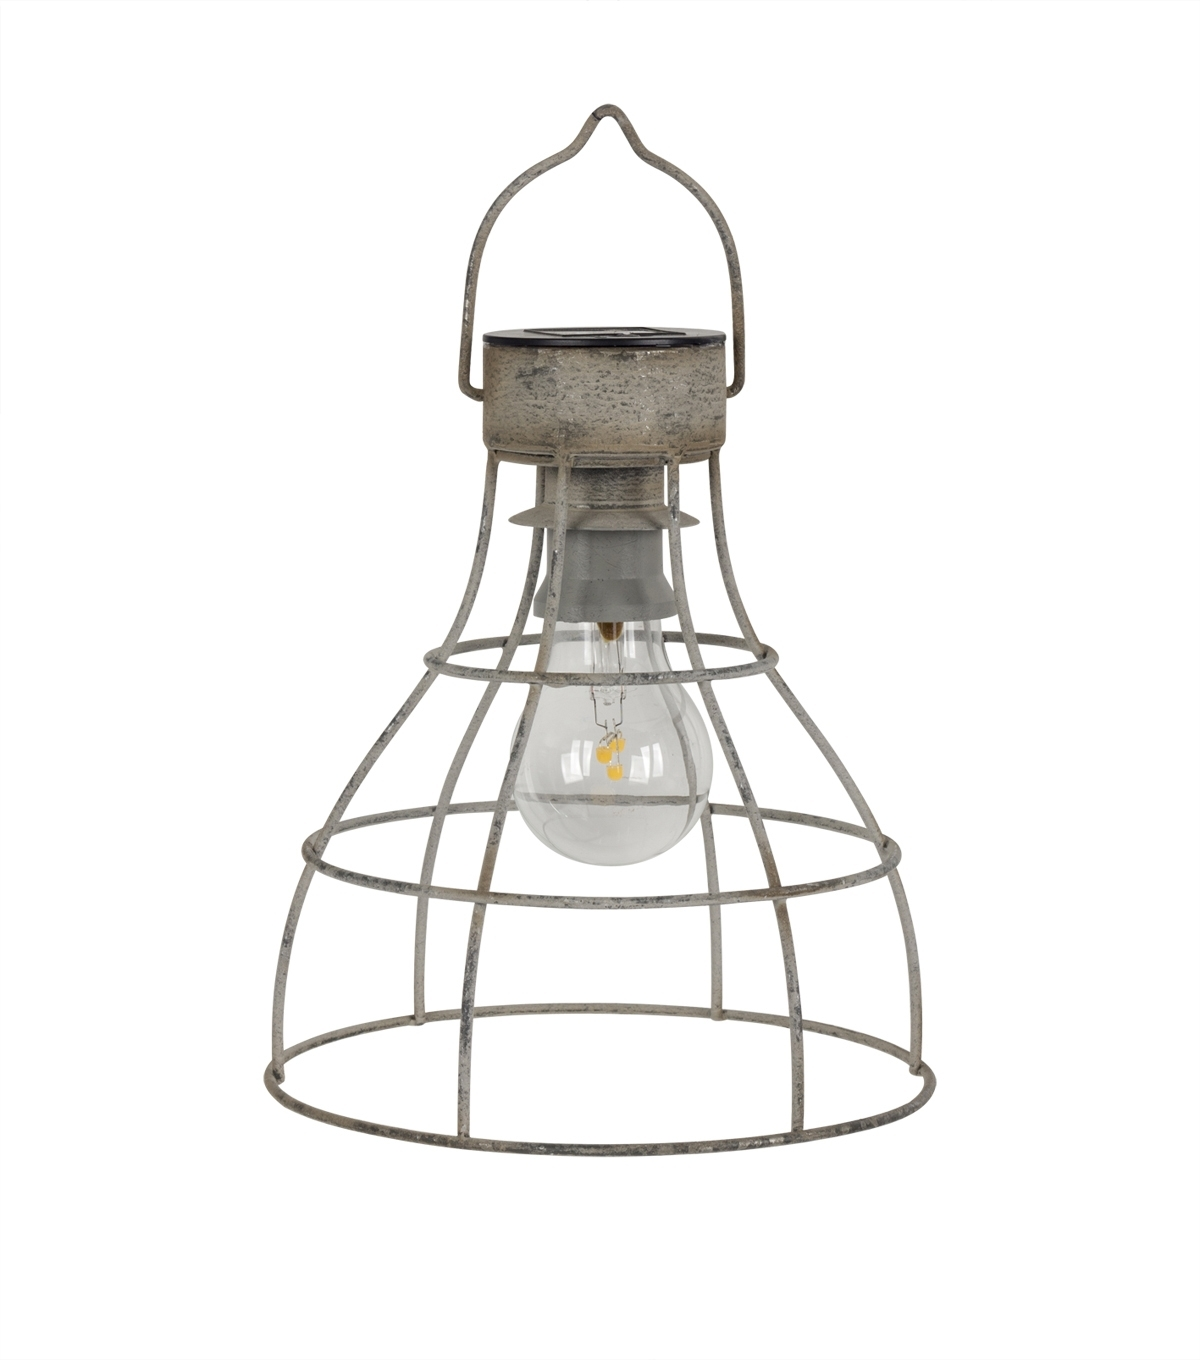 2018 Seaport Metal Solar Lantern Decor (Gallery 9 of 20)